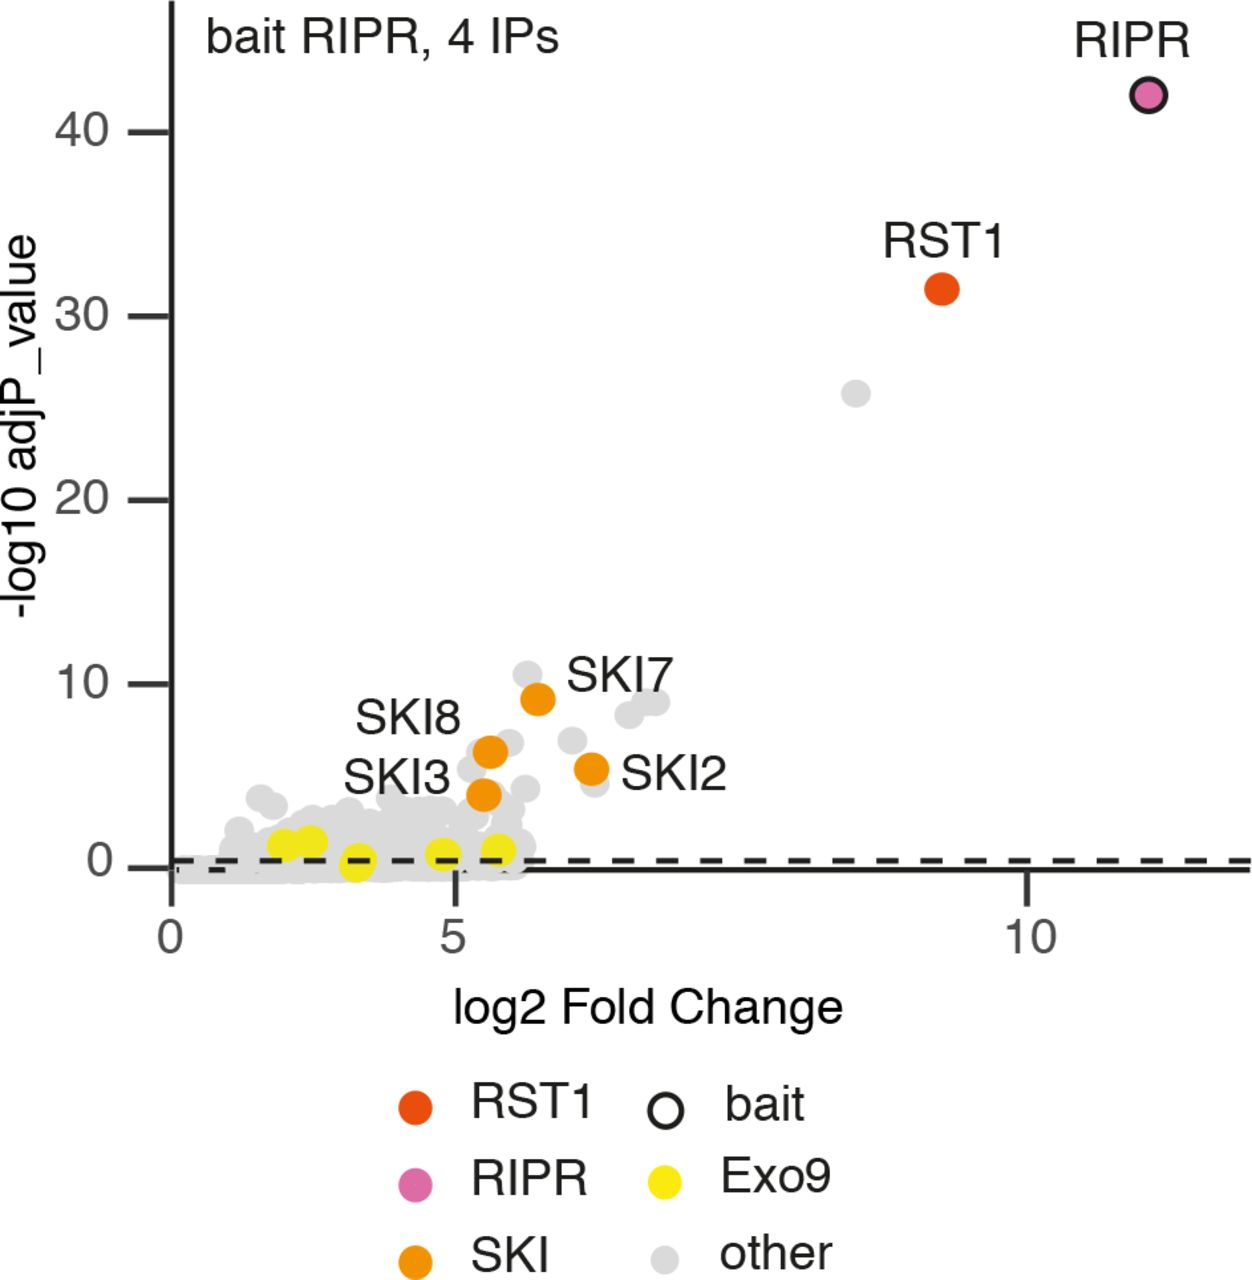 RST1 and RIPR connect the cytosolic RNA exosome to the Ski